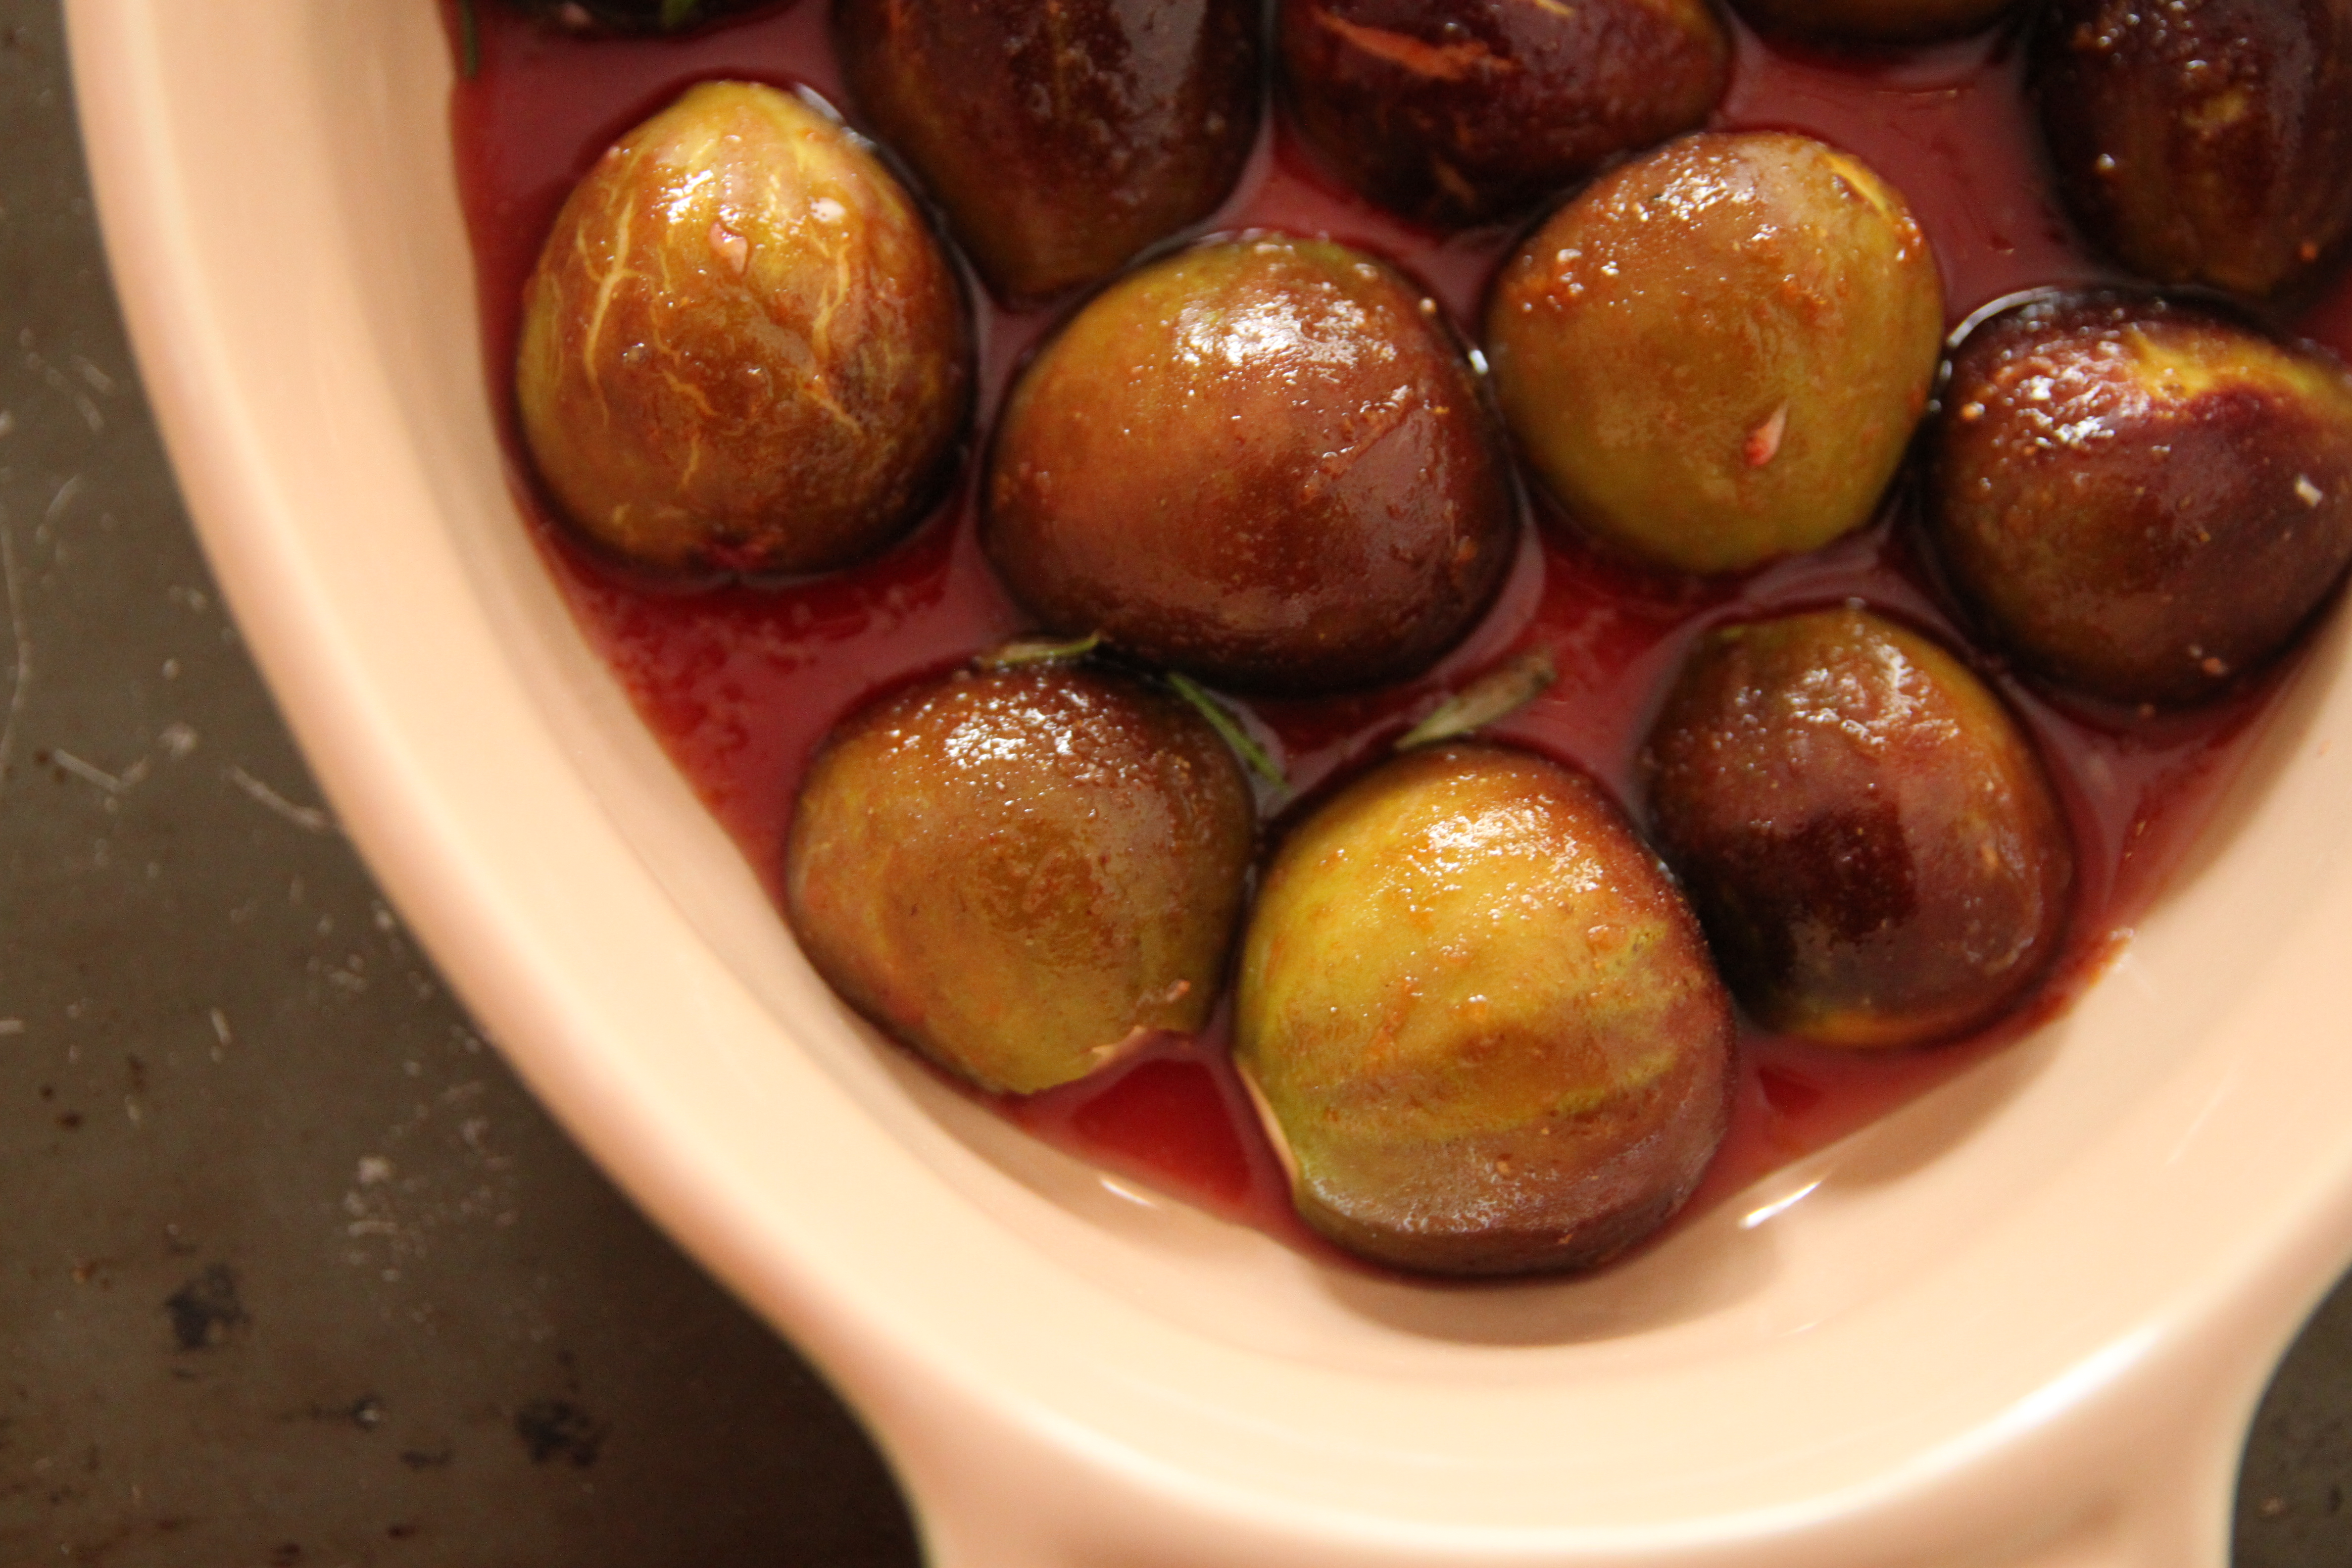 Bran Appetit » Baking Through the Blogs: Roasted Figs